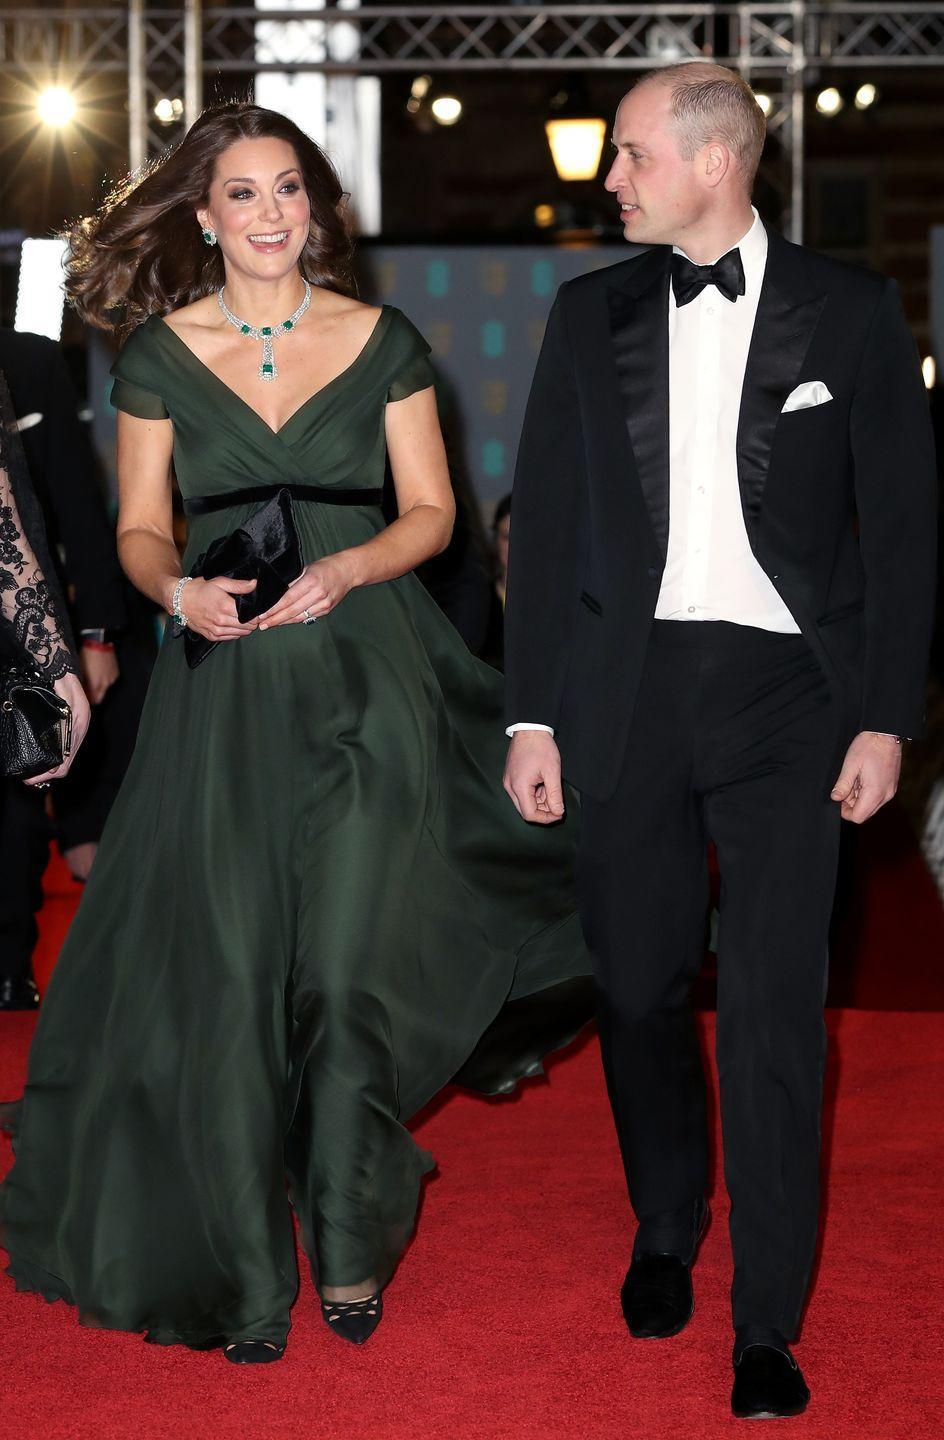 """<p>Duchess Kate and Will dressed up for a night out at the BAFTA Awards in London. Despite <a href=""""https://www.townandcountrymag.com/style/fashion-trends/a16868409/kate-middleton-baftas-black-dress-times-up/"""" rel=""""nofollow noopener"""" target=""""_blank"""" data-ylk=""""slk:the BAFTA's all-black dress code in support of the #TimesUp movement"""" class=""""link rapid-noclick-resp"""">the BAFTA's all-black dress code in support of the #TimesUp movement</a>, the Duchess wore a green Jenny Packham gown with emerald jewelry, Prada heels, and a black clutch.</p>"""